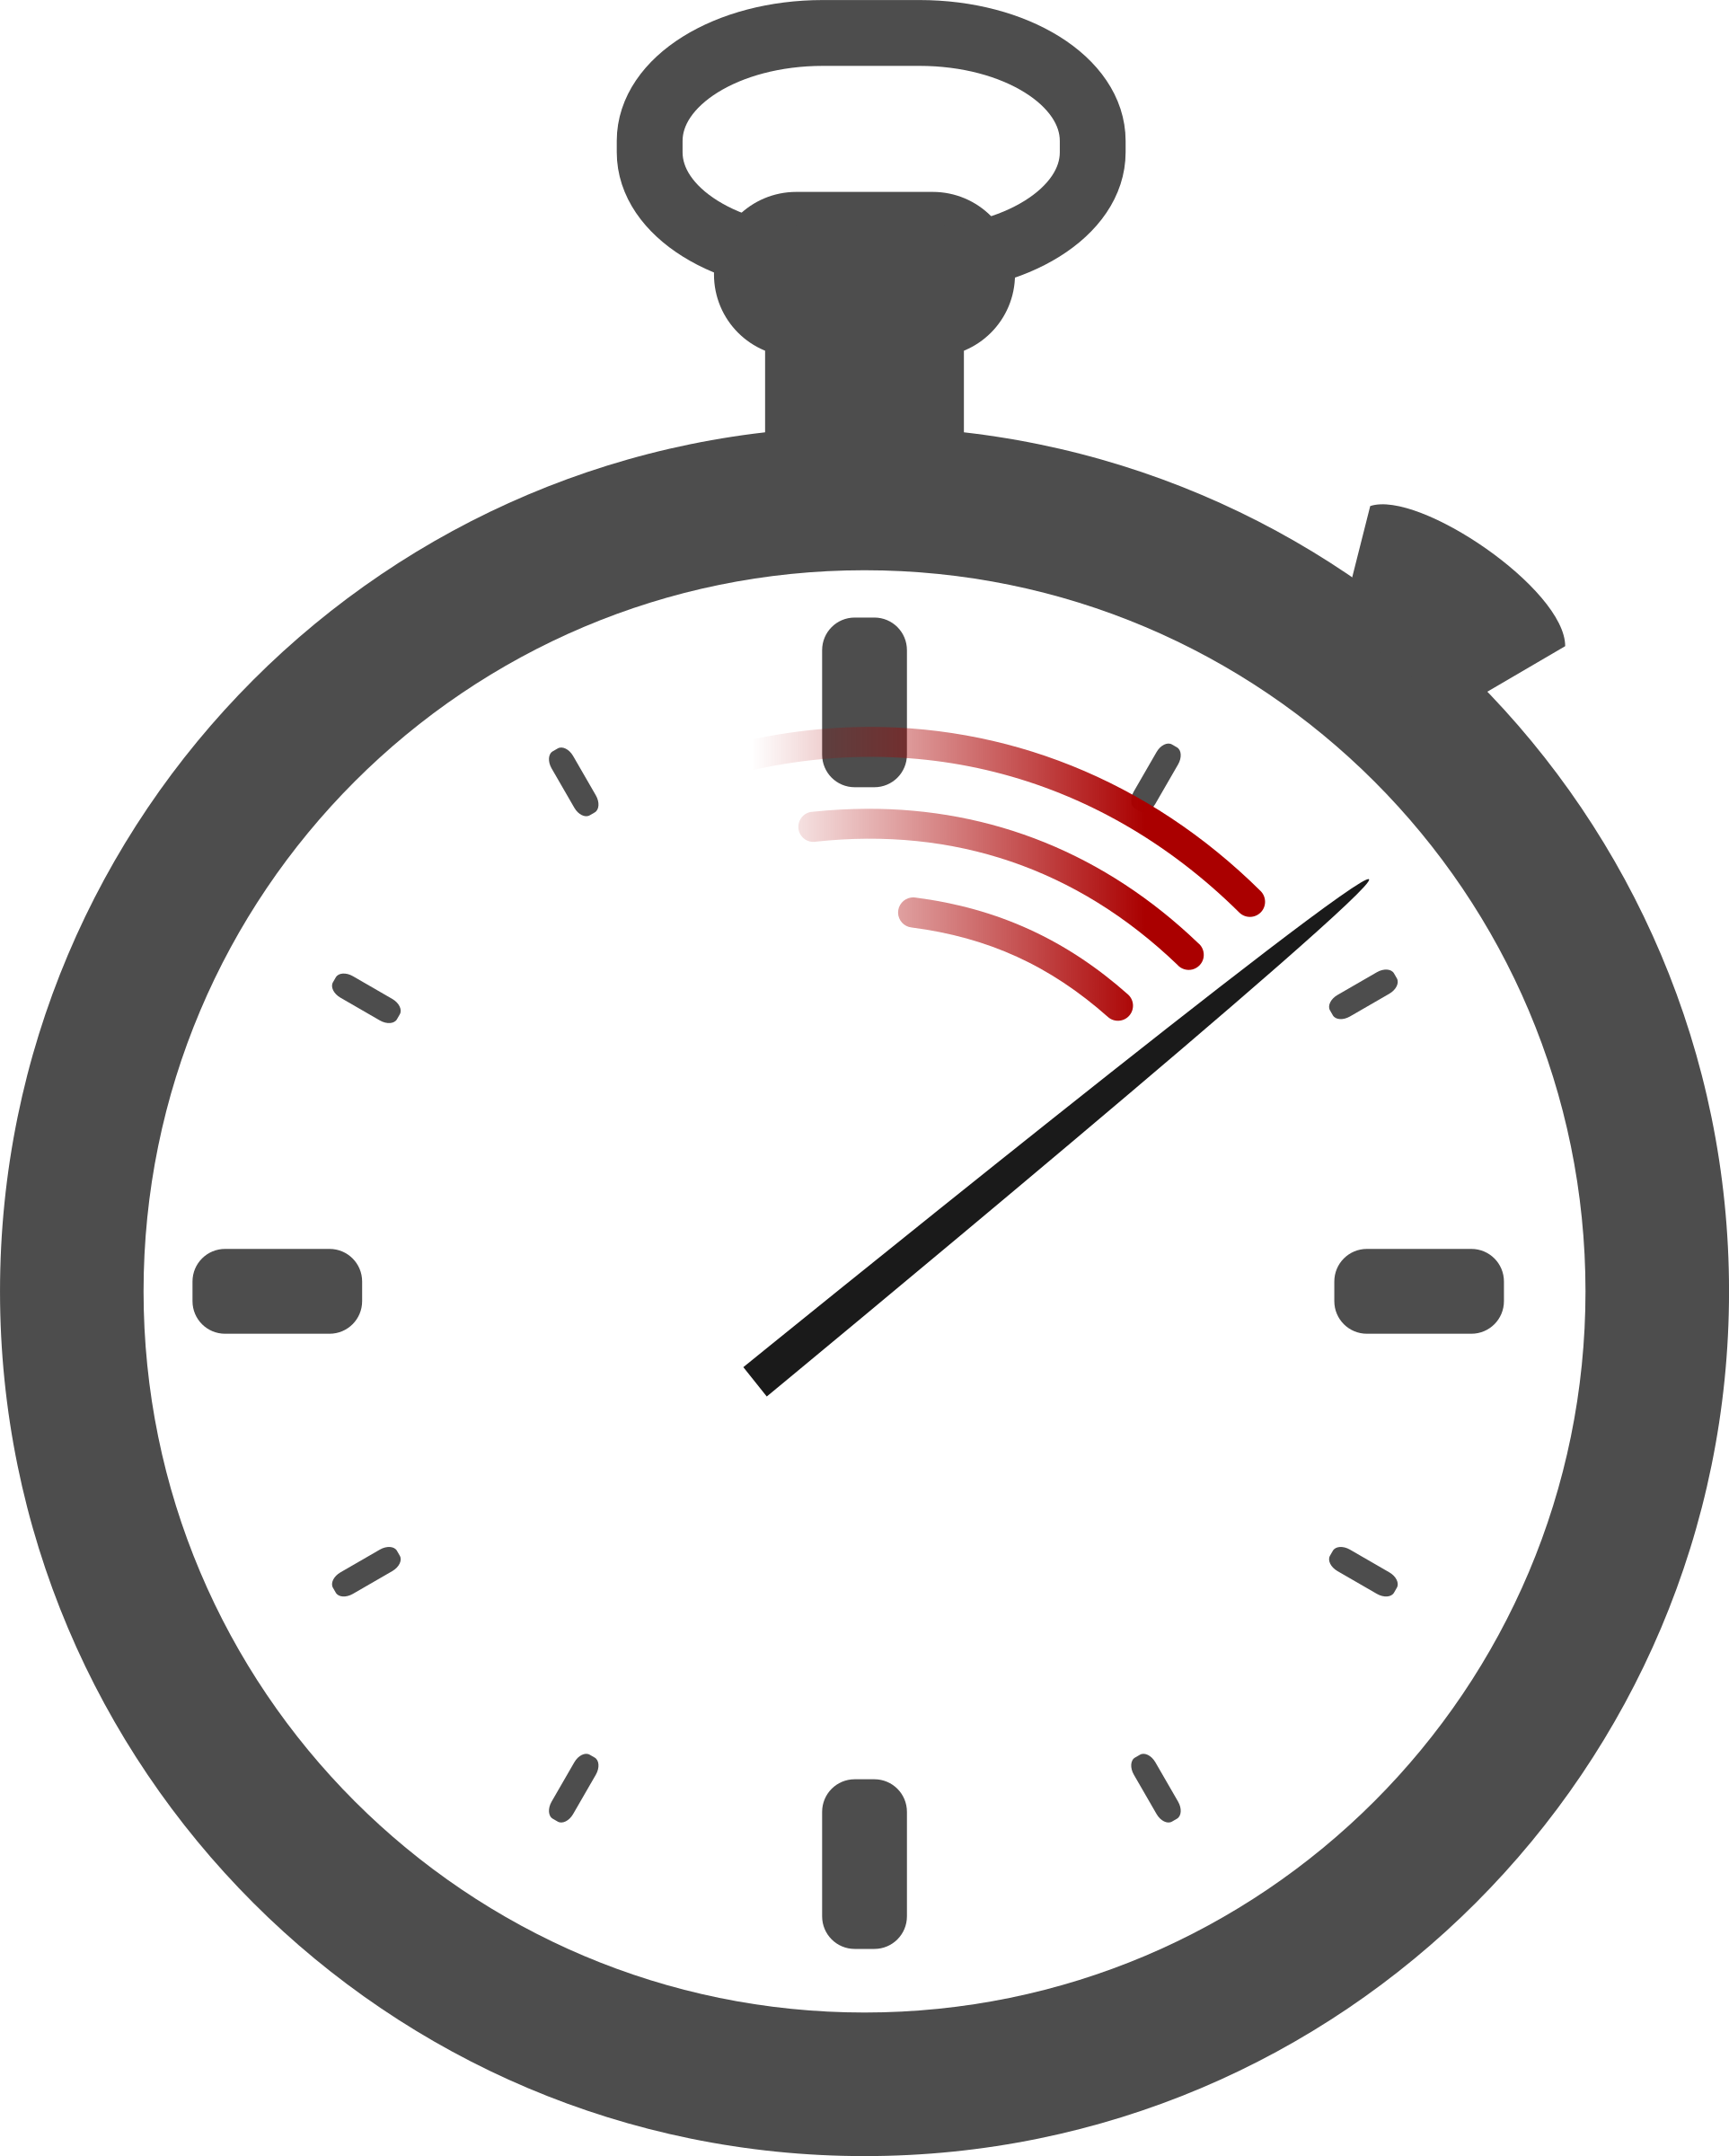 png free library No shading big image. Hand clipart stopwatch